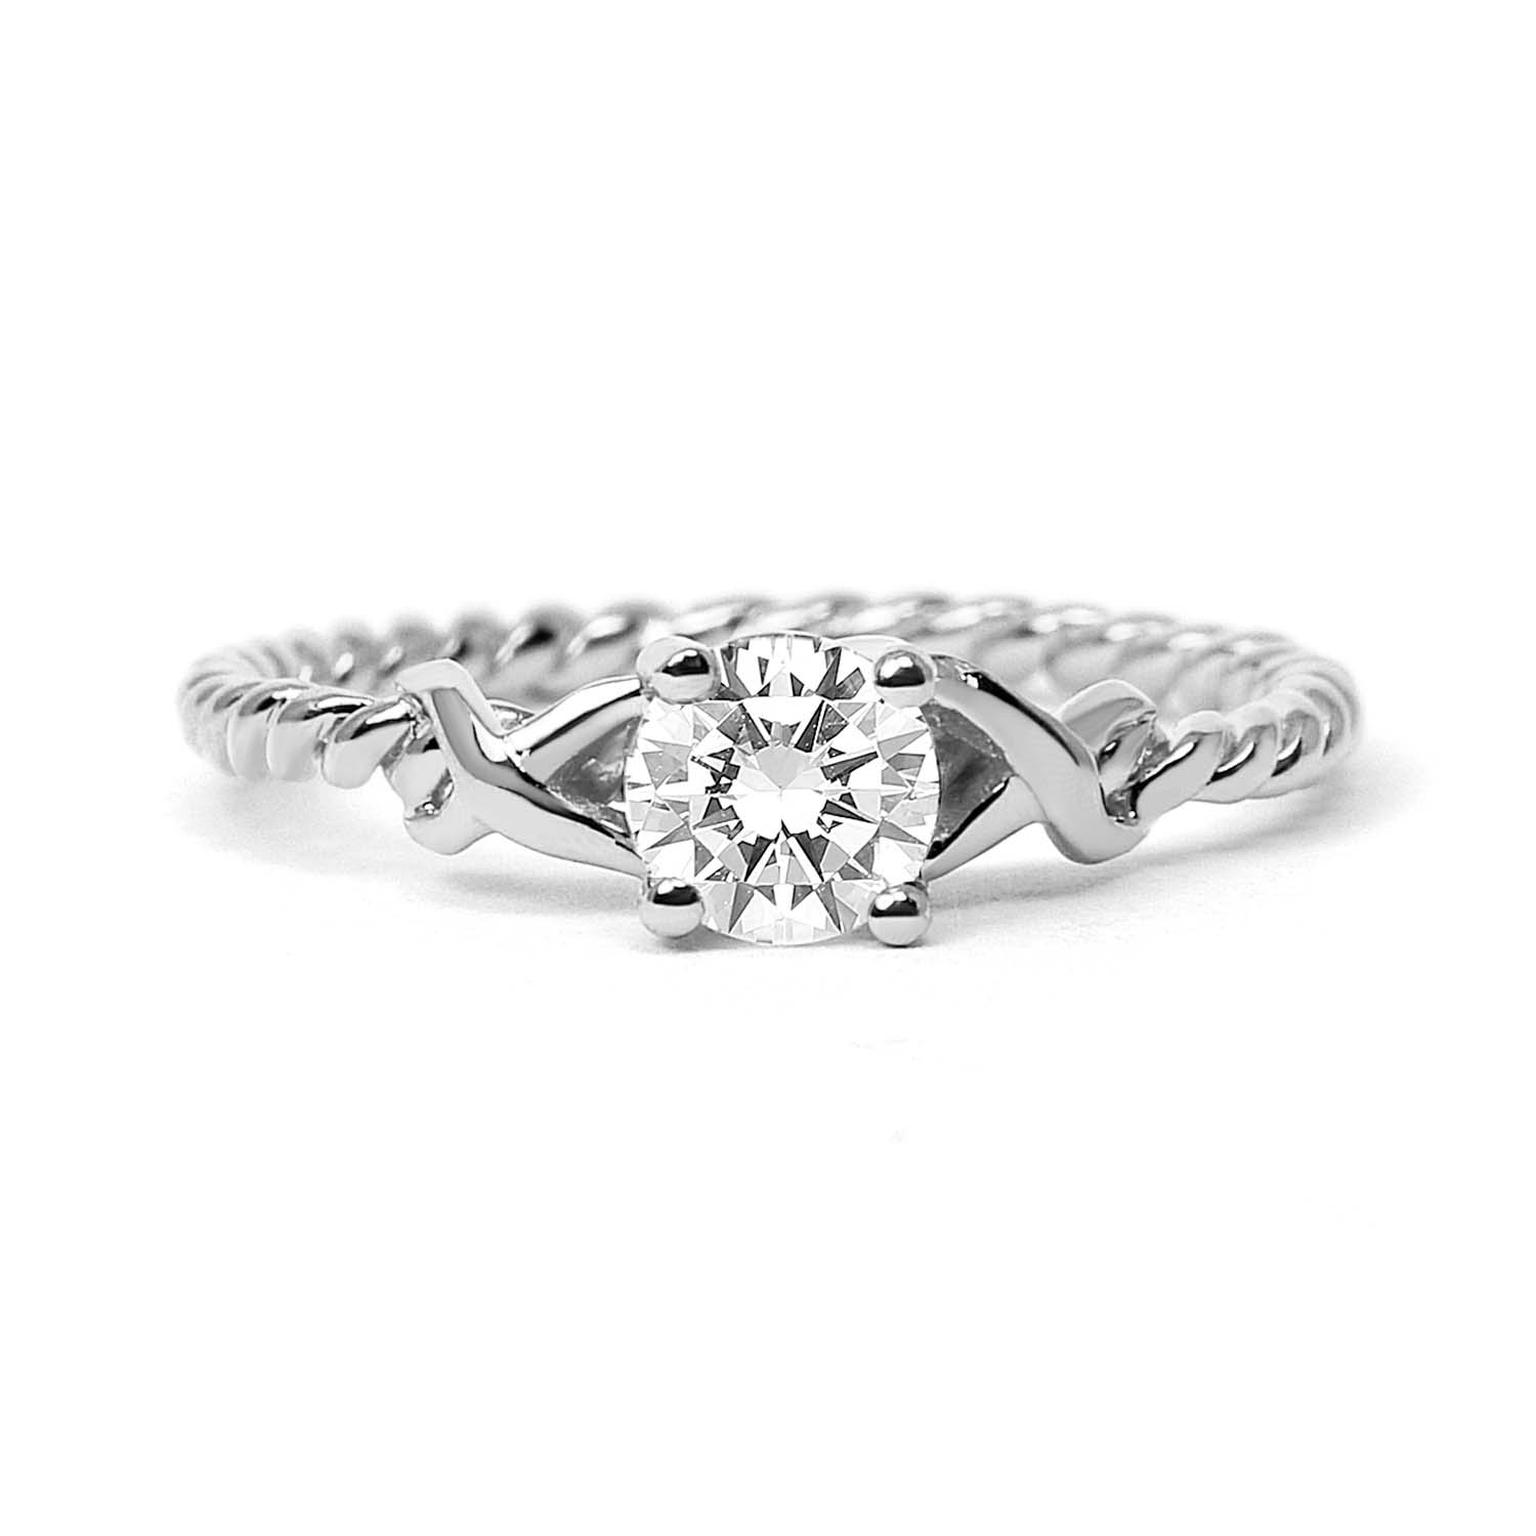 Arabel Lebrusan Braided ethical diamond engagement ring, made from recycled platinum (from £2,170).